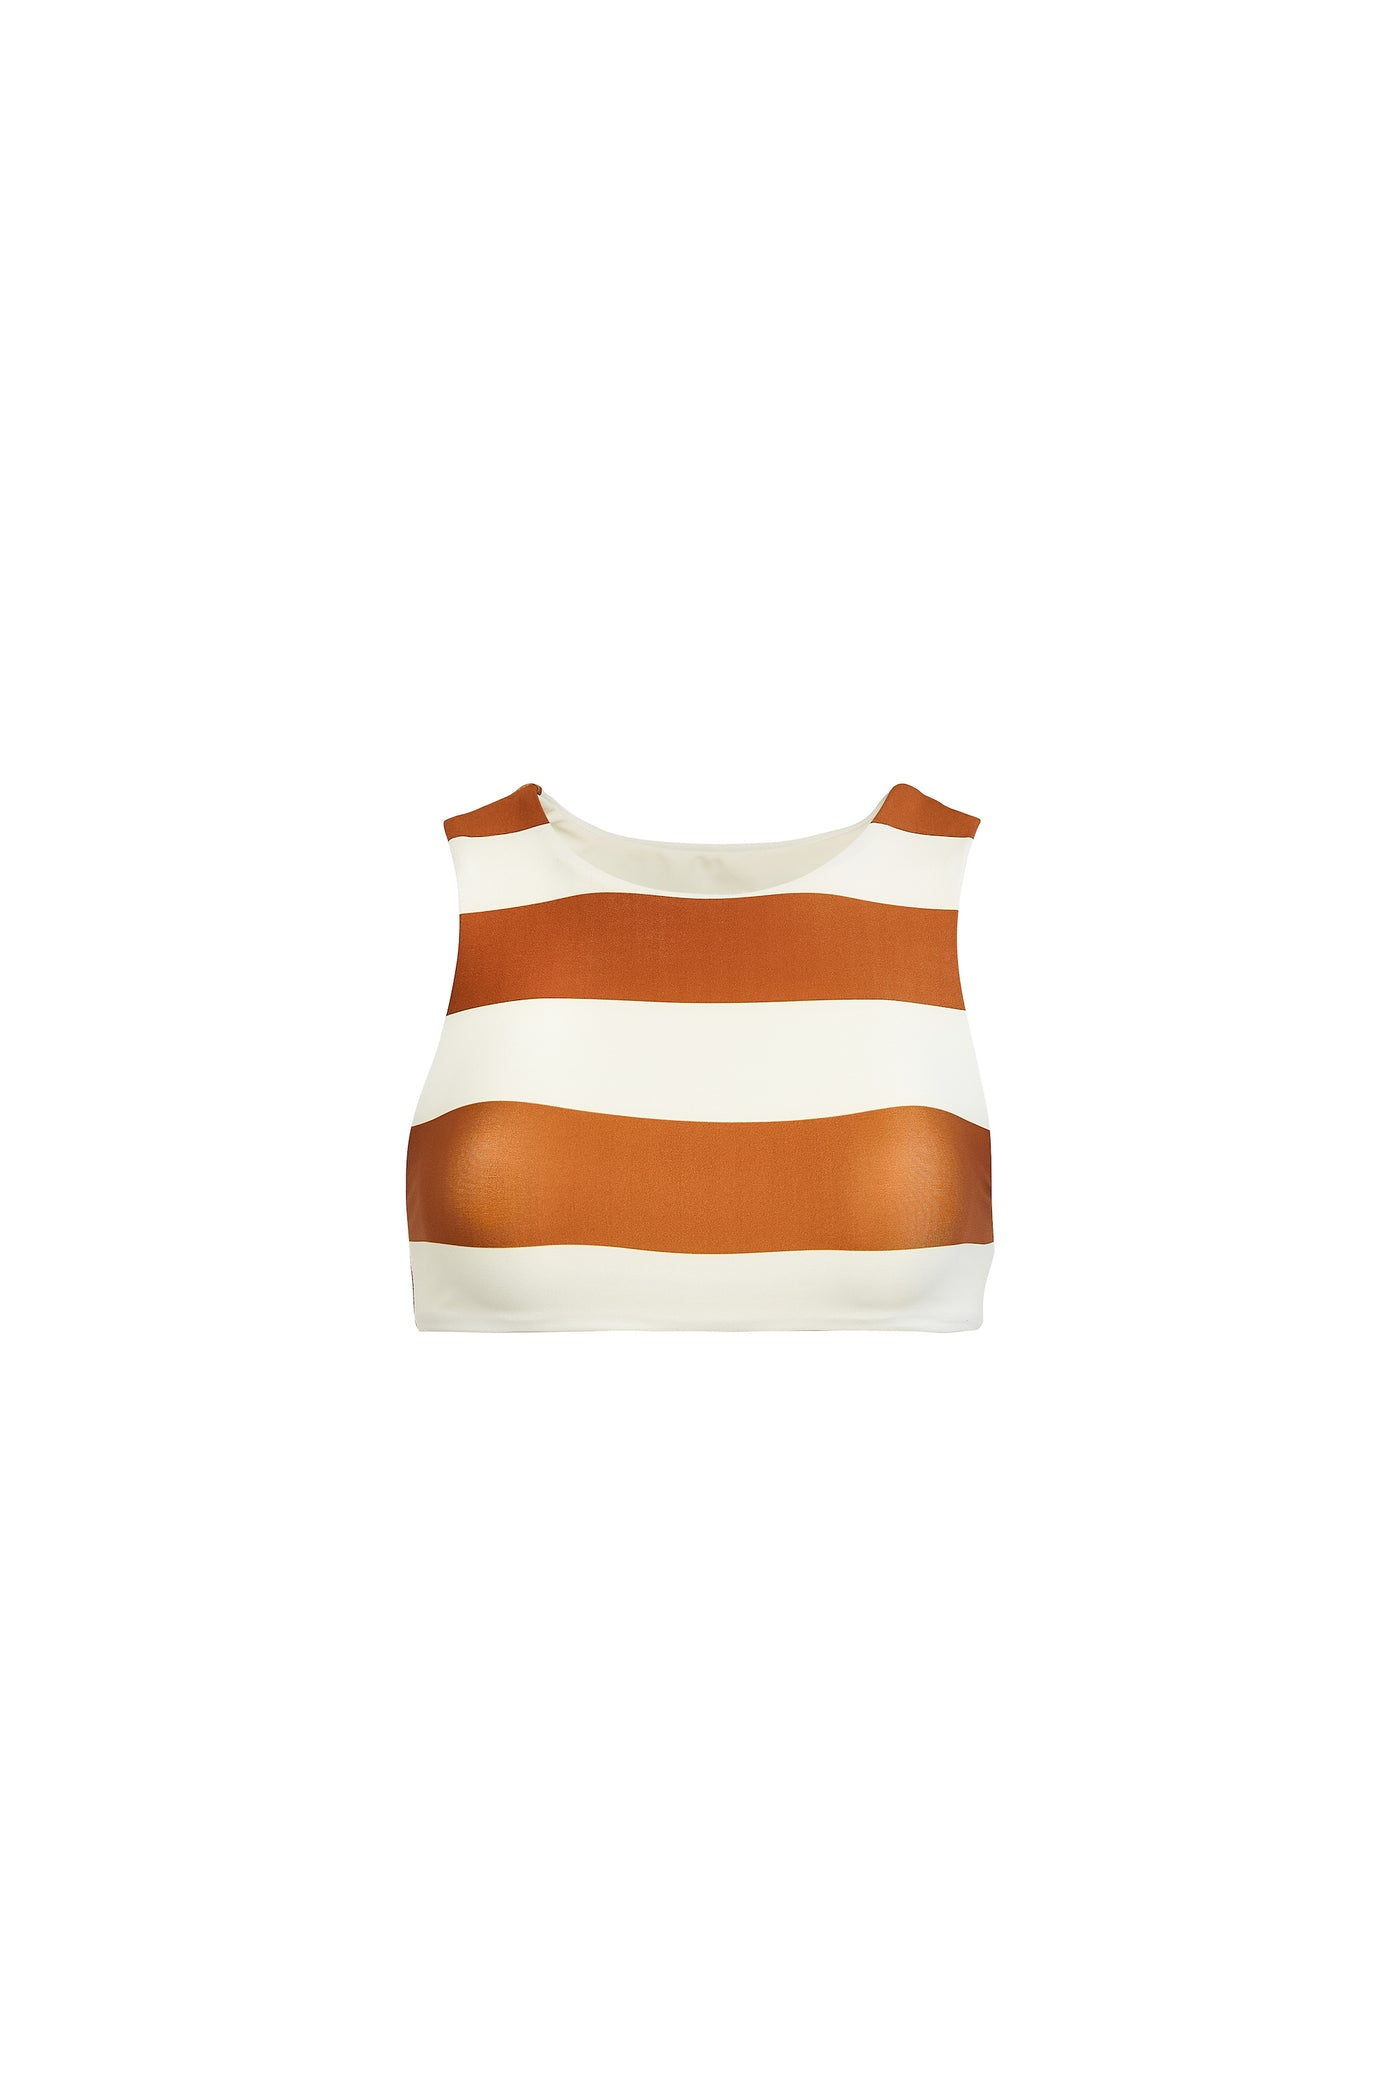 The Lady Crop Top (Cream Camel Stripe)